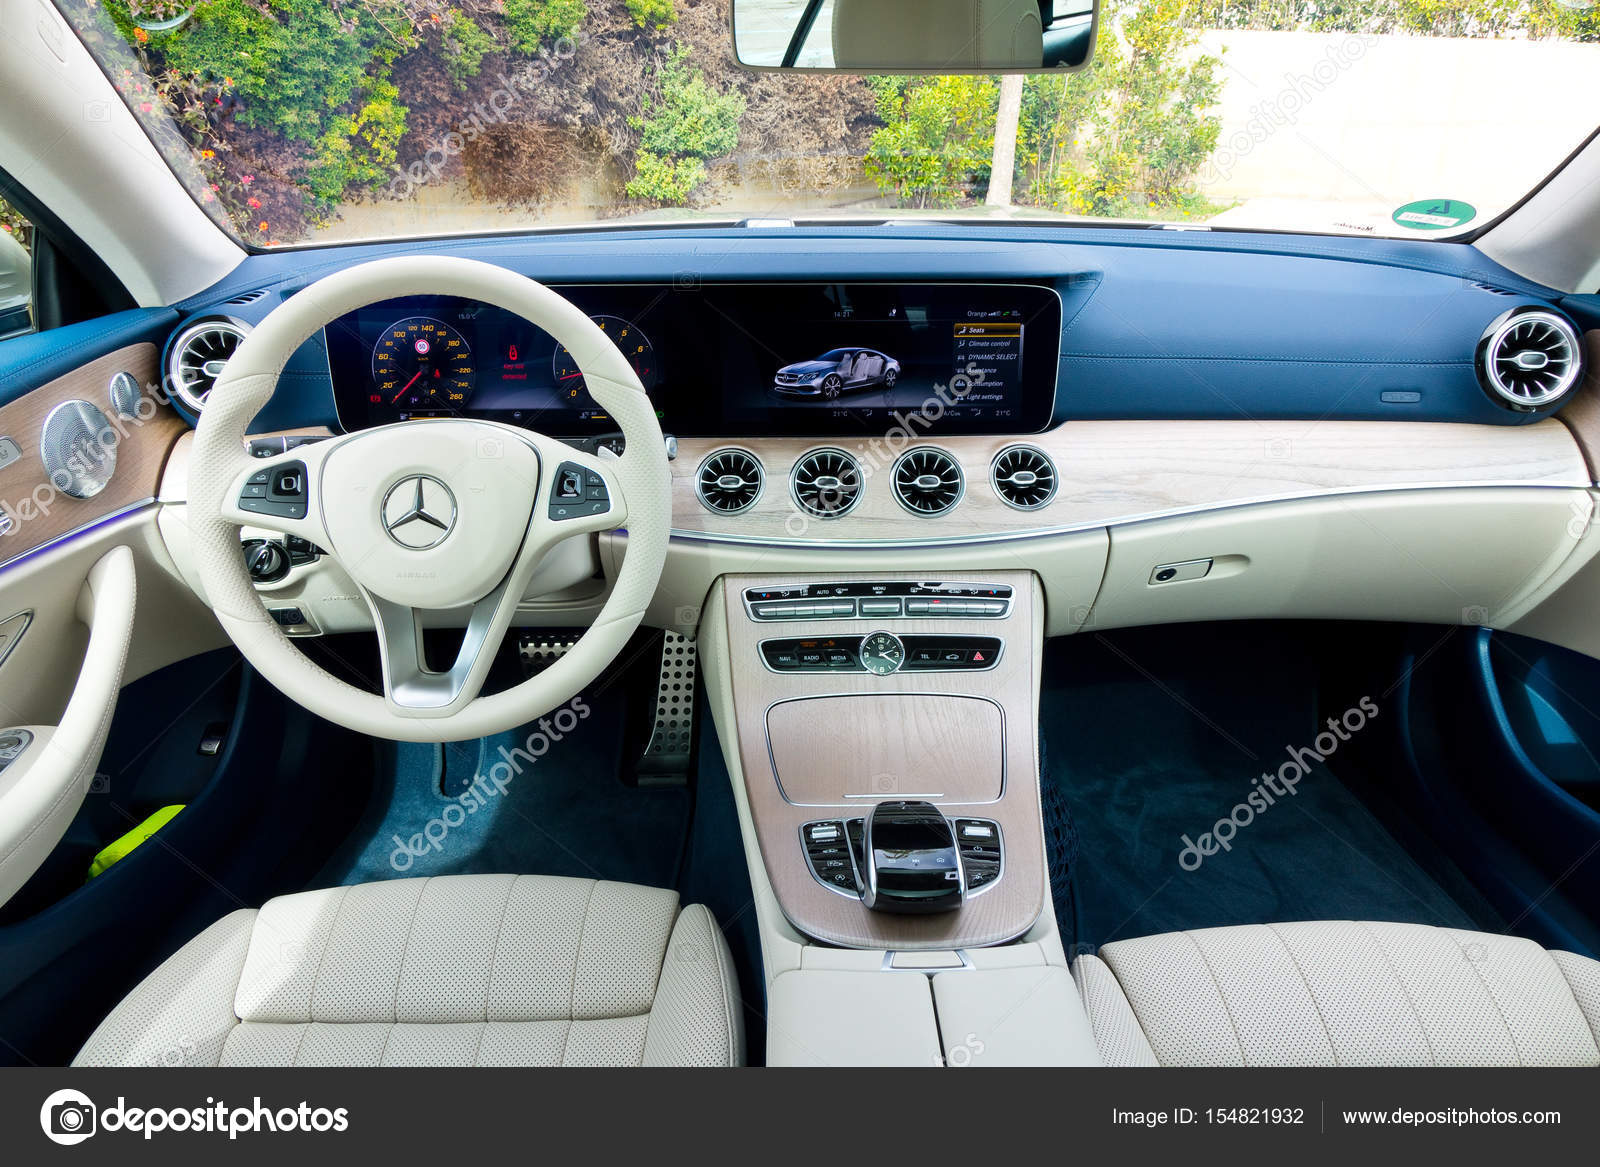 Mercedes benz e klasse coup 2017 interieur for Interieur e klasse 2017